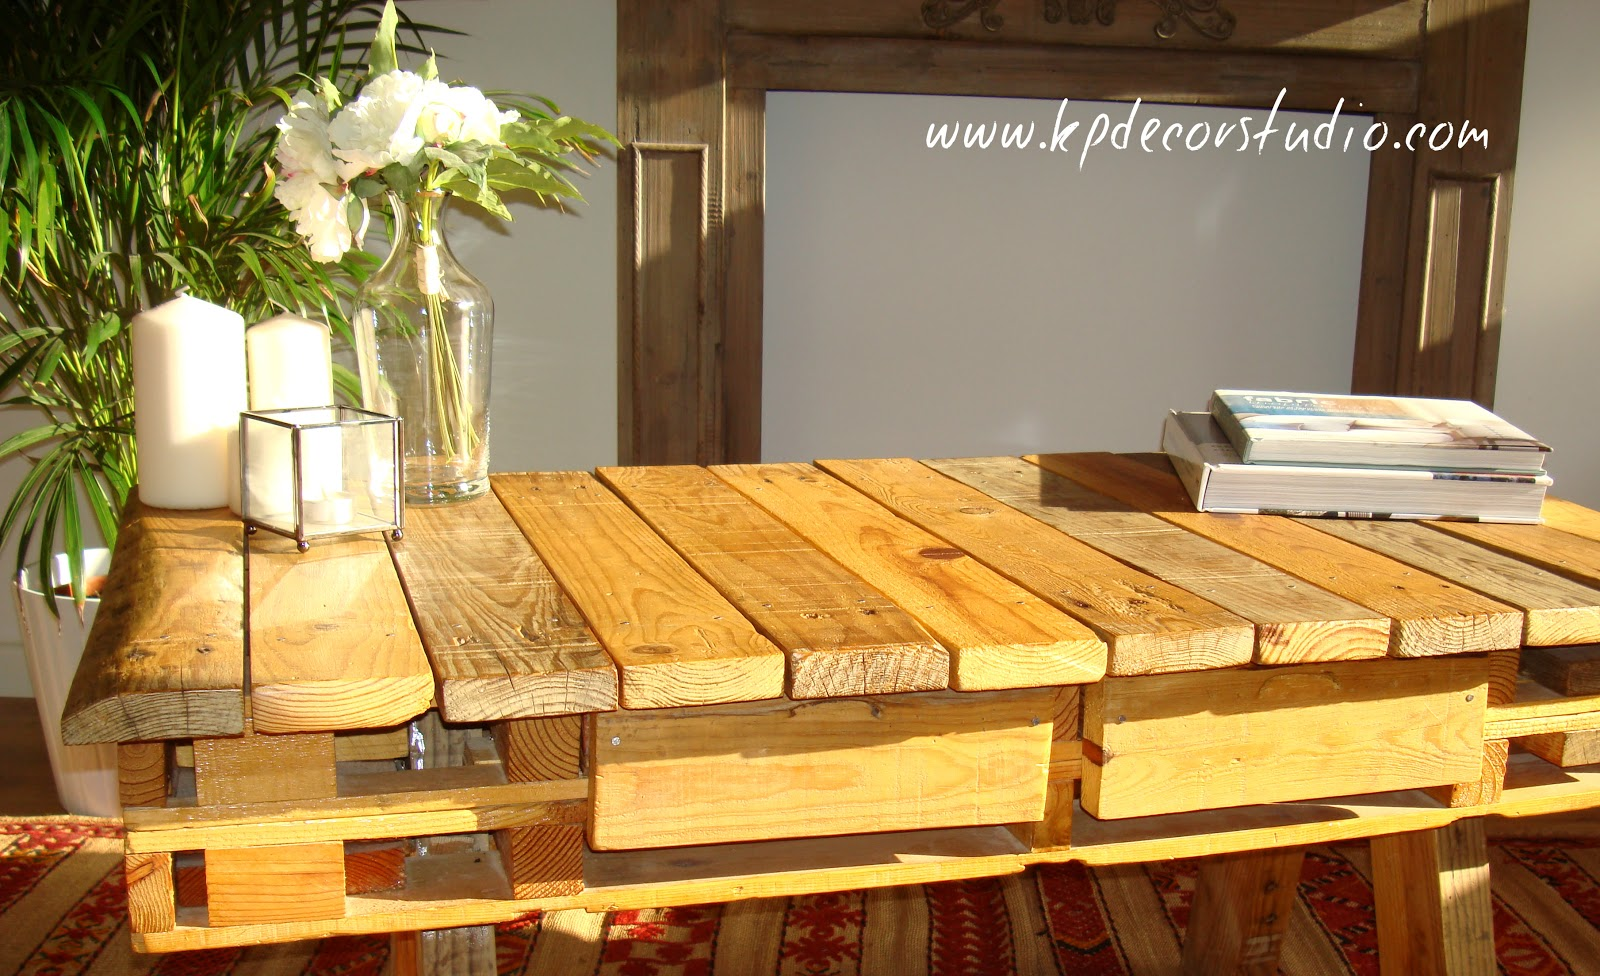 Decoracion Vintage Barata ~ Mesa de madera (palet) por encargo  Exclusive wood table for sale